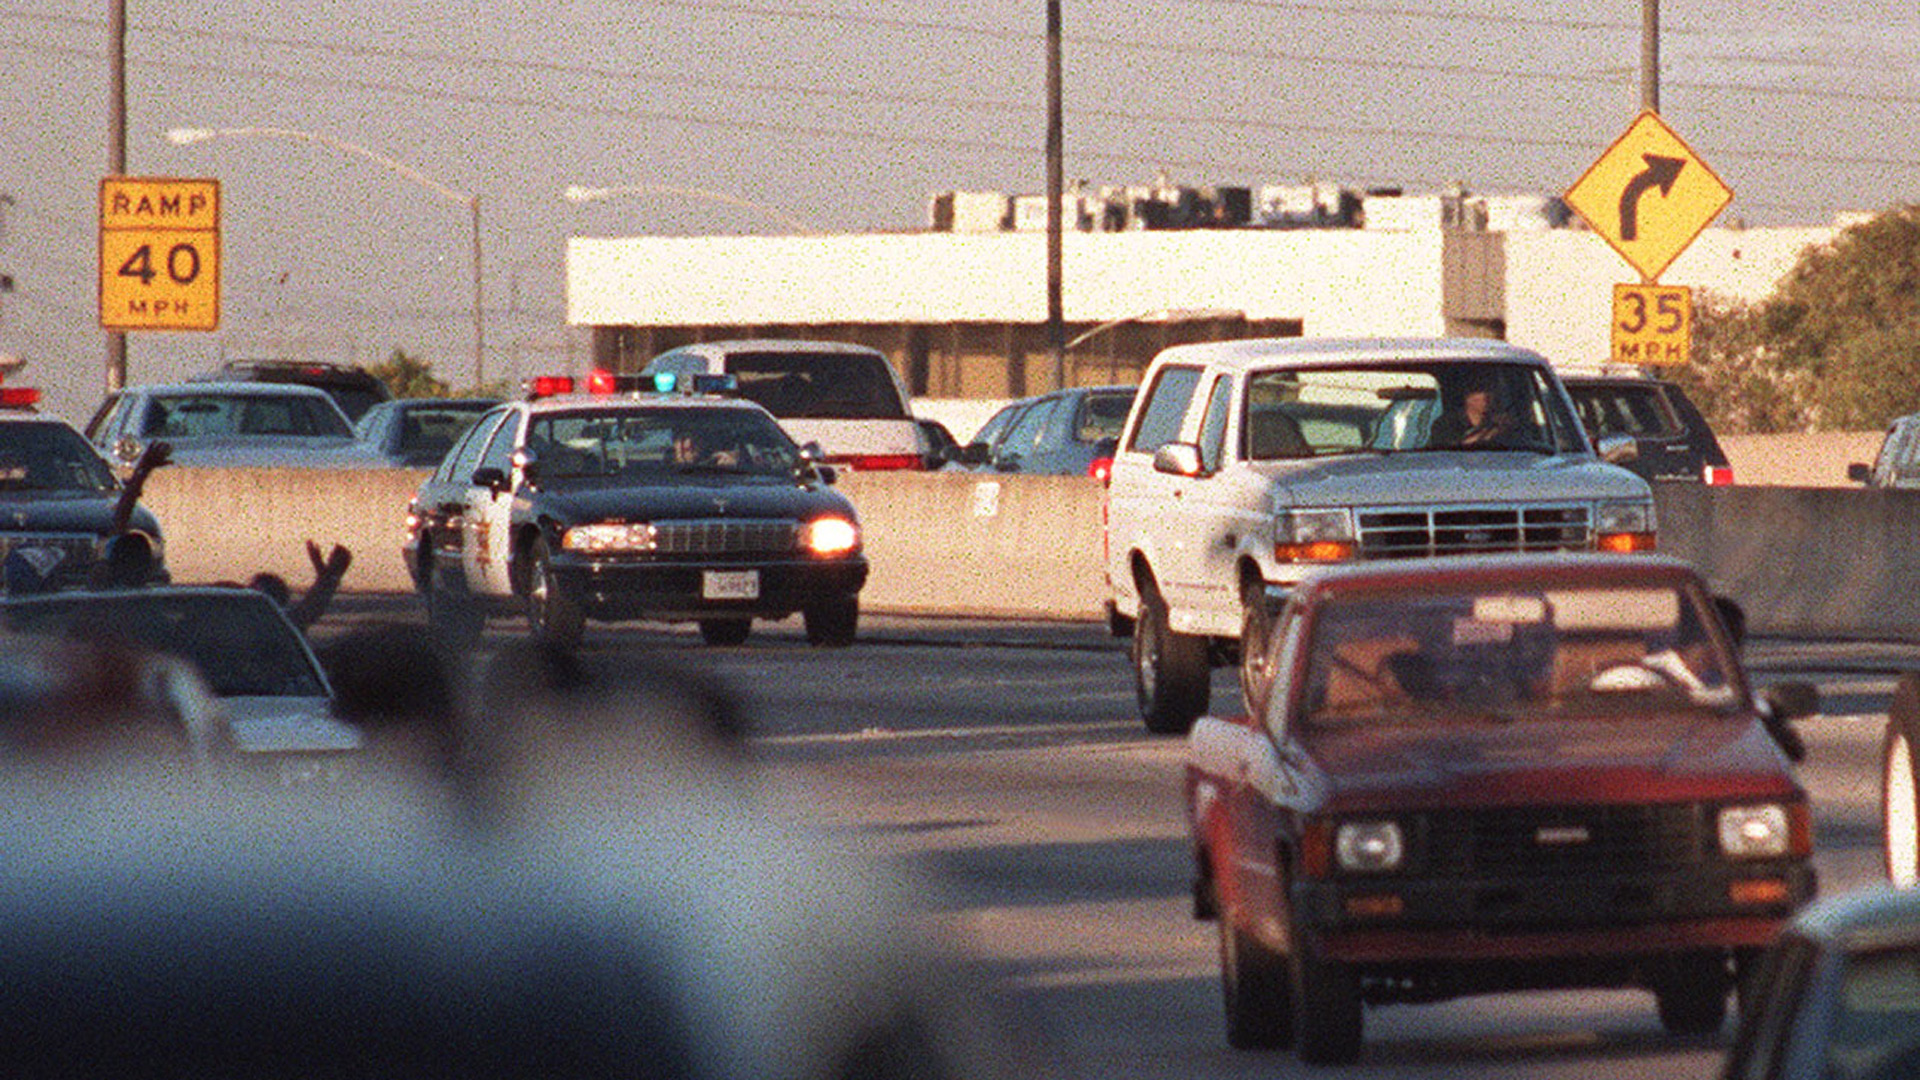 Motorists wave as police cars pursue the Ford Bronco (white, R) driven by Al Cowlings, carrying fugitive murder suspect O.J. Simpson, on a 90-minute slow-speed car chase June 17, 1994, on the 405 freeway in Los Angeles, California. Simpson's friend Cowlings eventually drove Simpson home, with Simpson ducked under the back passenger seat, to Brentwood where he surrendered after a stand-off with police. (Credit: MIKE NELSON/AFP via Getty Images)